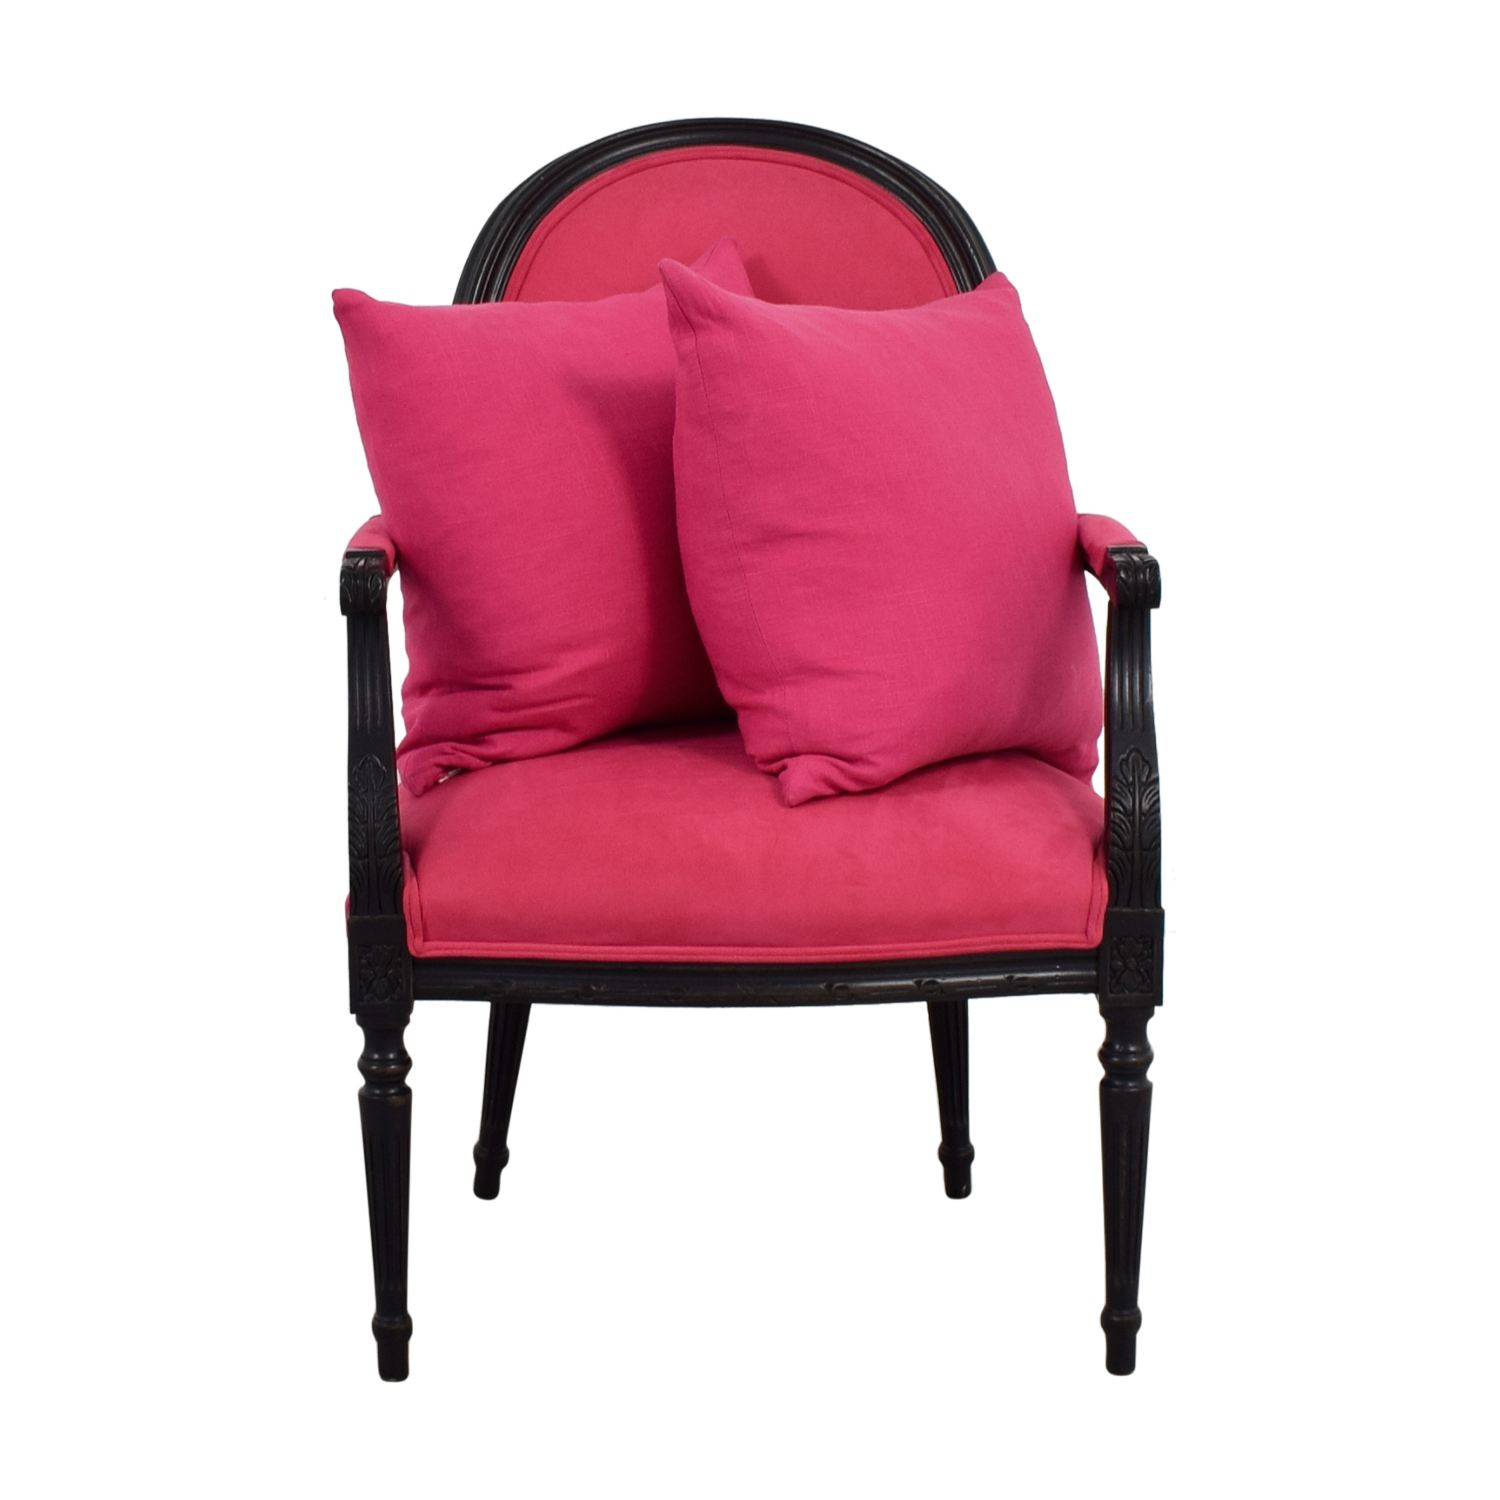 Ethan Allen Ethan Allen Fuchsia Upholstered Black Arm Chair with Pillows Sofas